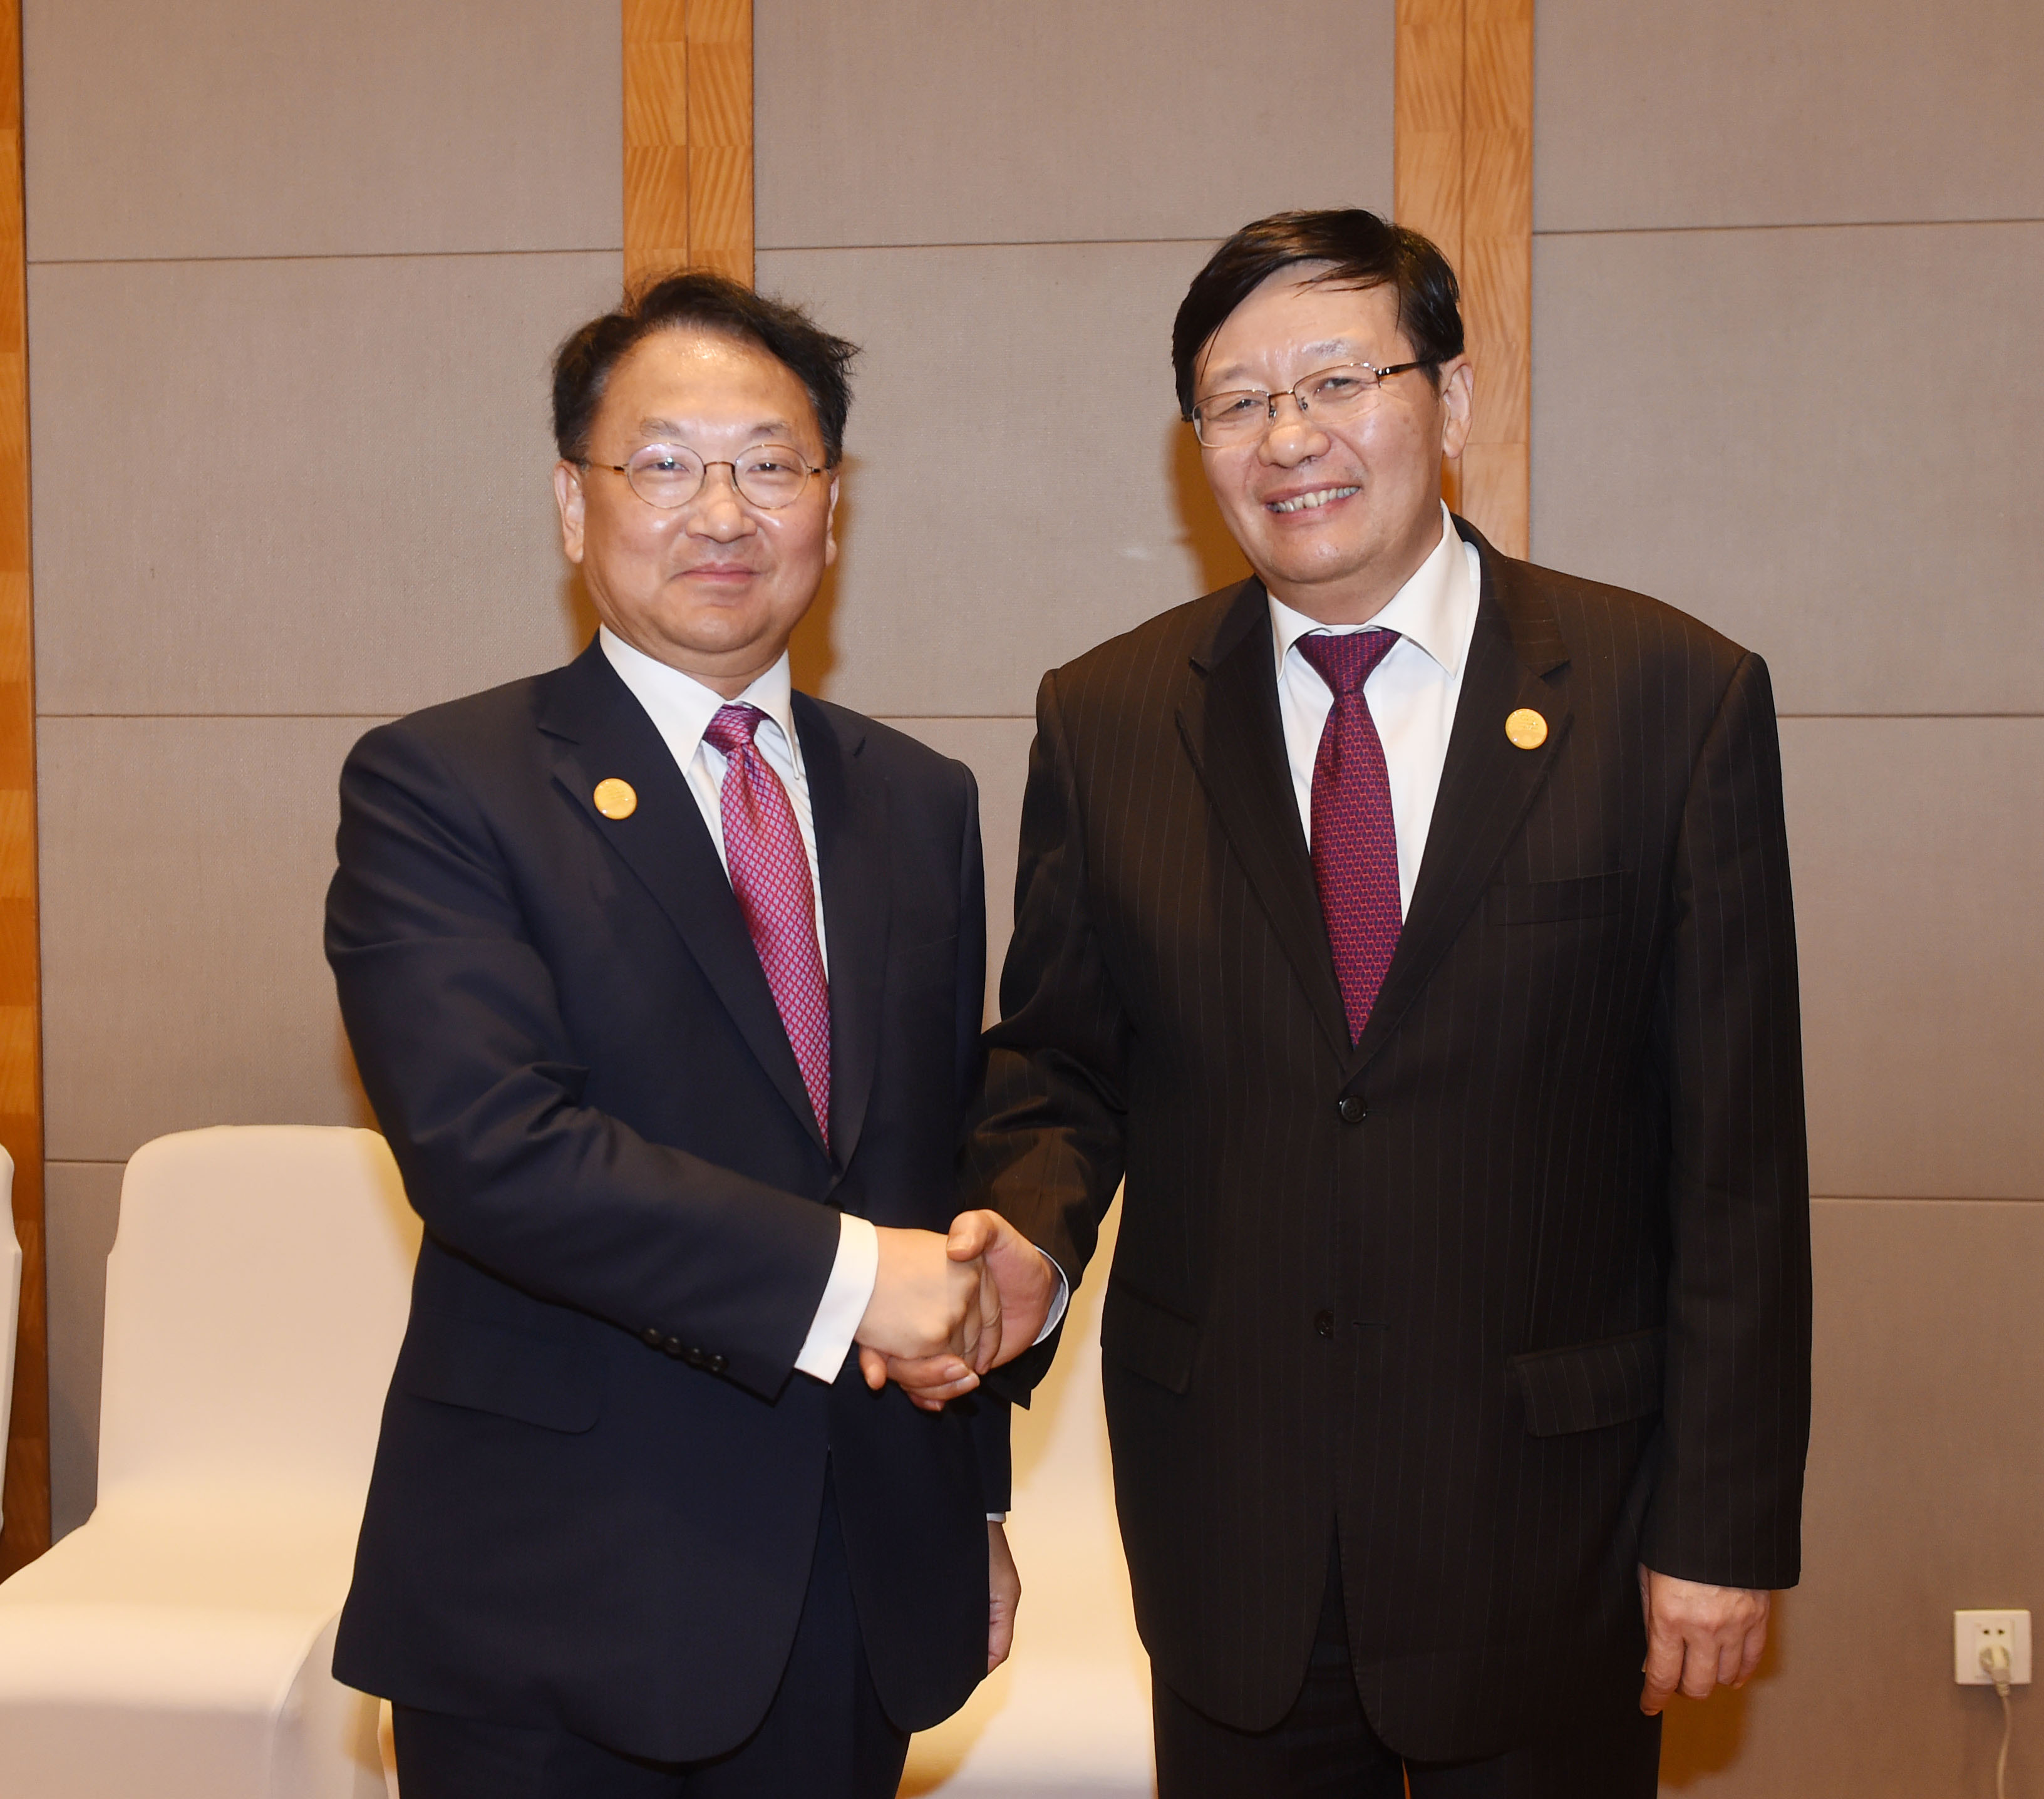 Deputy Prime Minister Yoo meets with Chinese Finance Minister Lou Jiwei in Chengdu, China